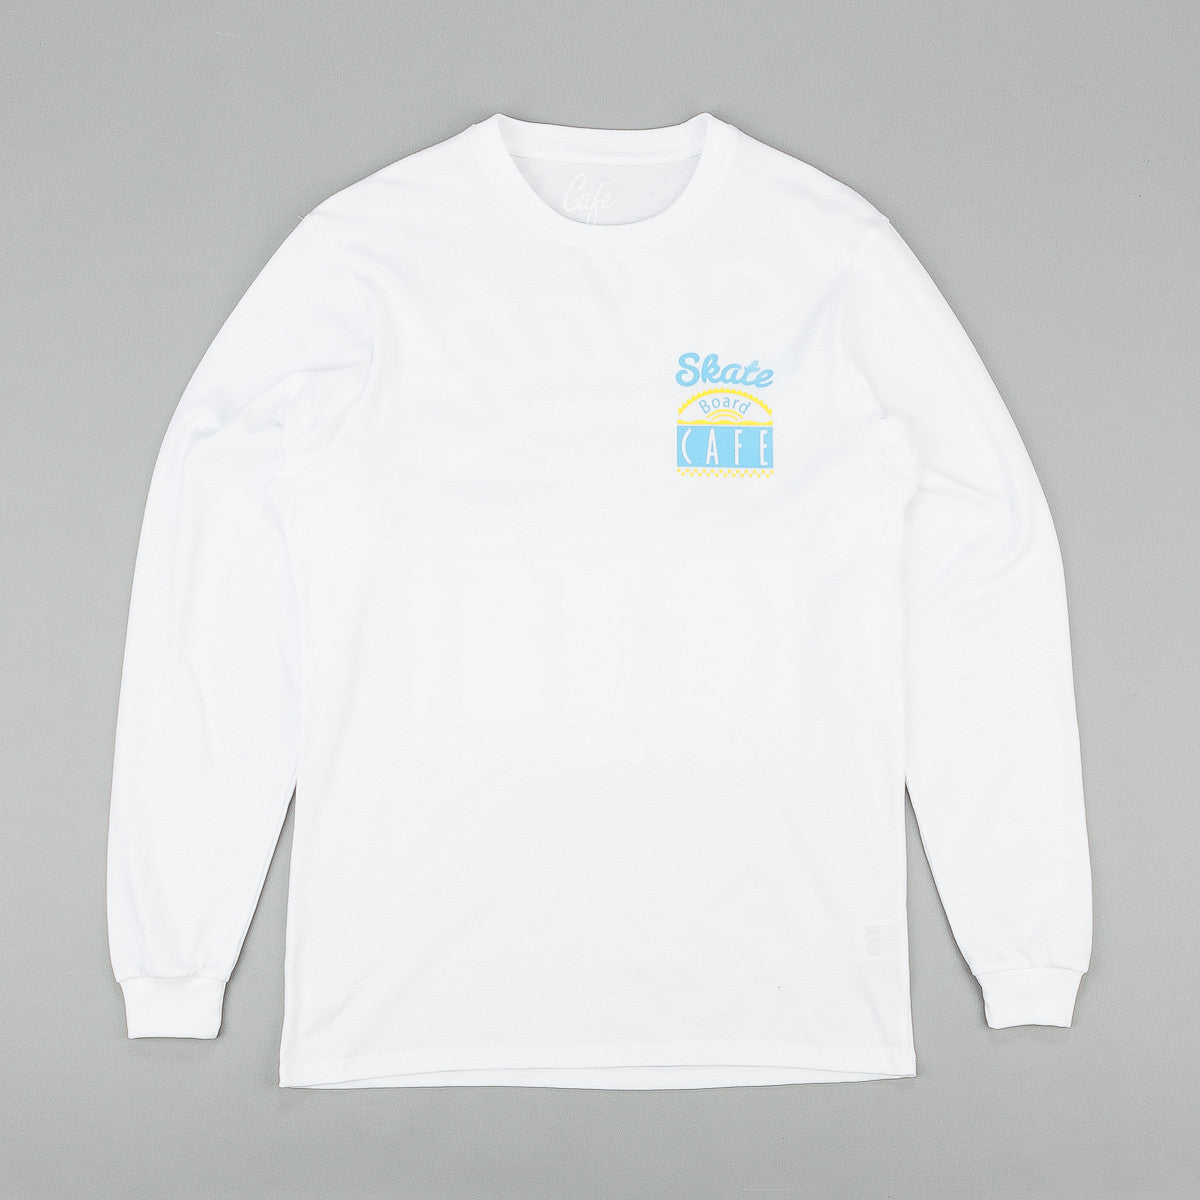 Skateboard Cafe Diner Long Sleeve T-Shirt - White / Blue / Yellow